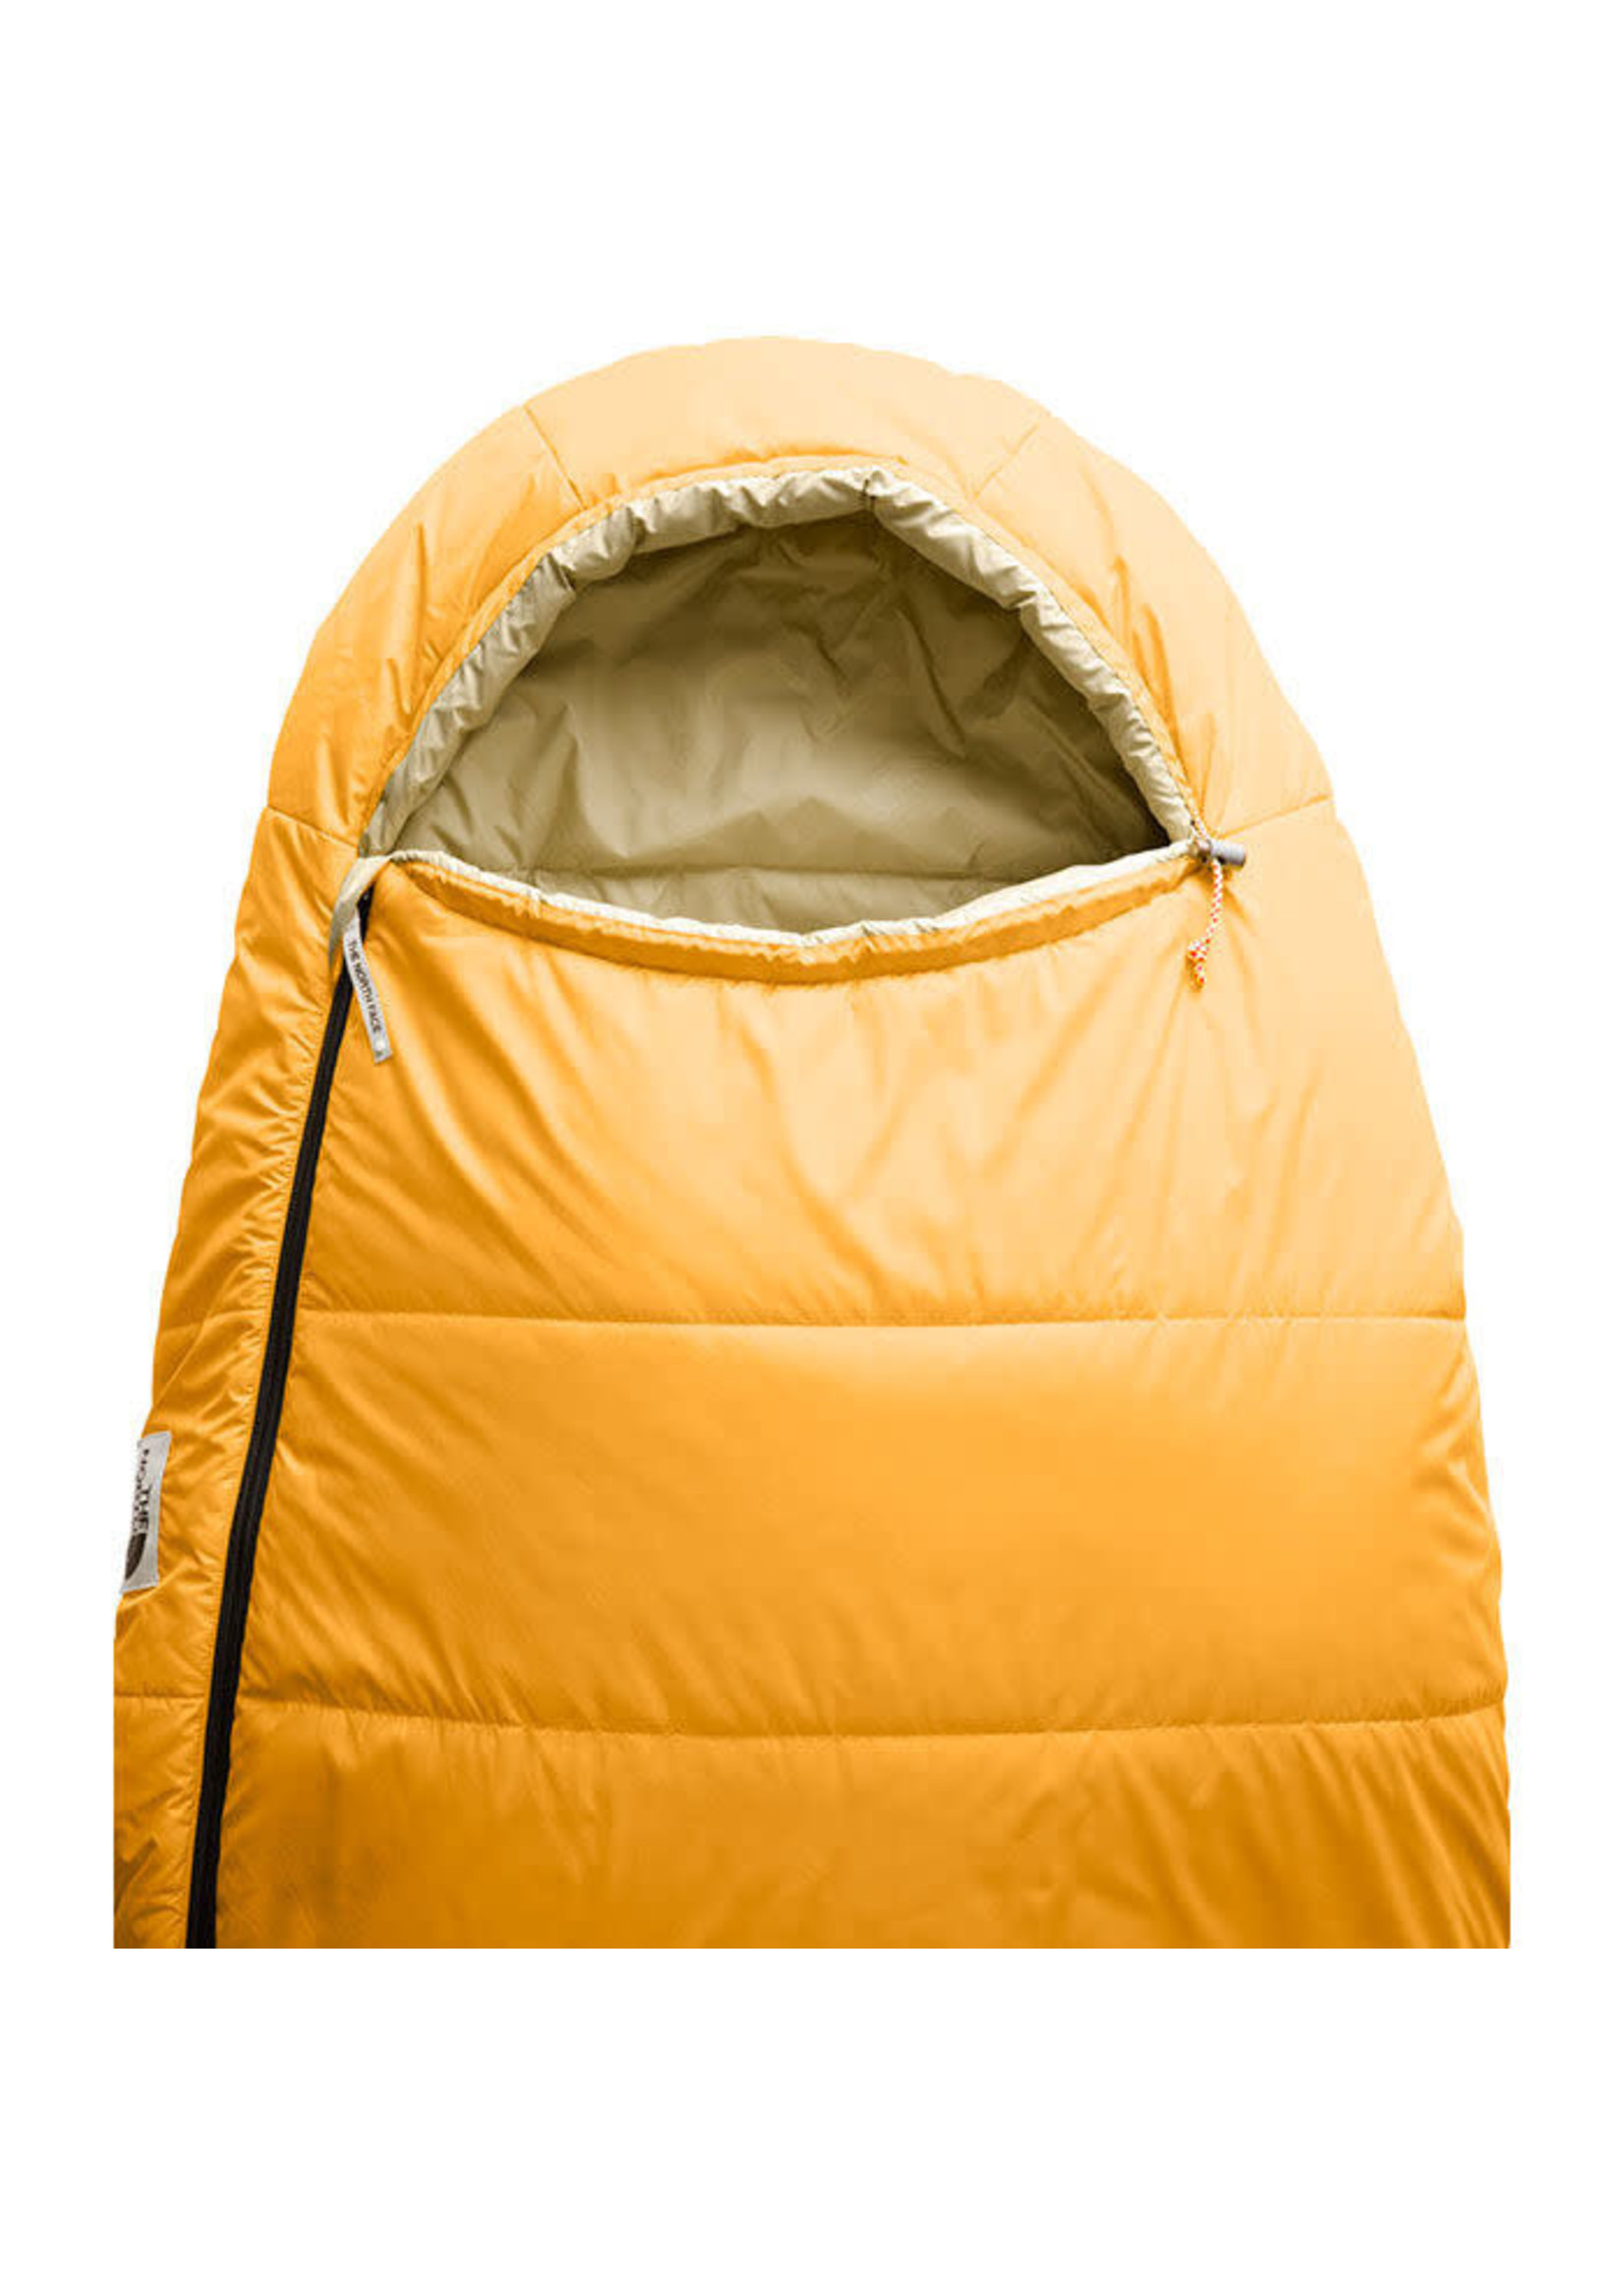 THE NORTH FACE Sac de couchage Eco Trail Synthetic 35 / Long / Jaune